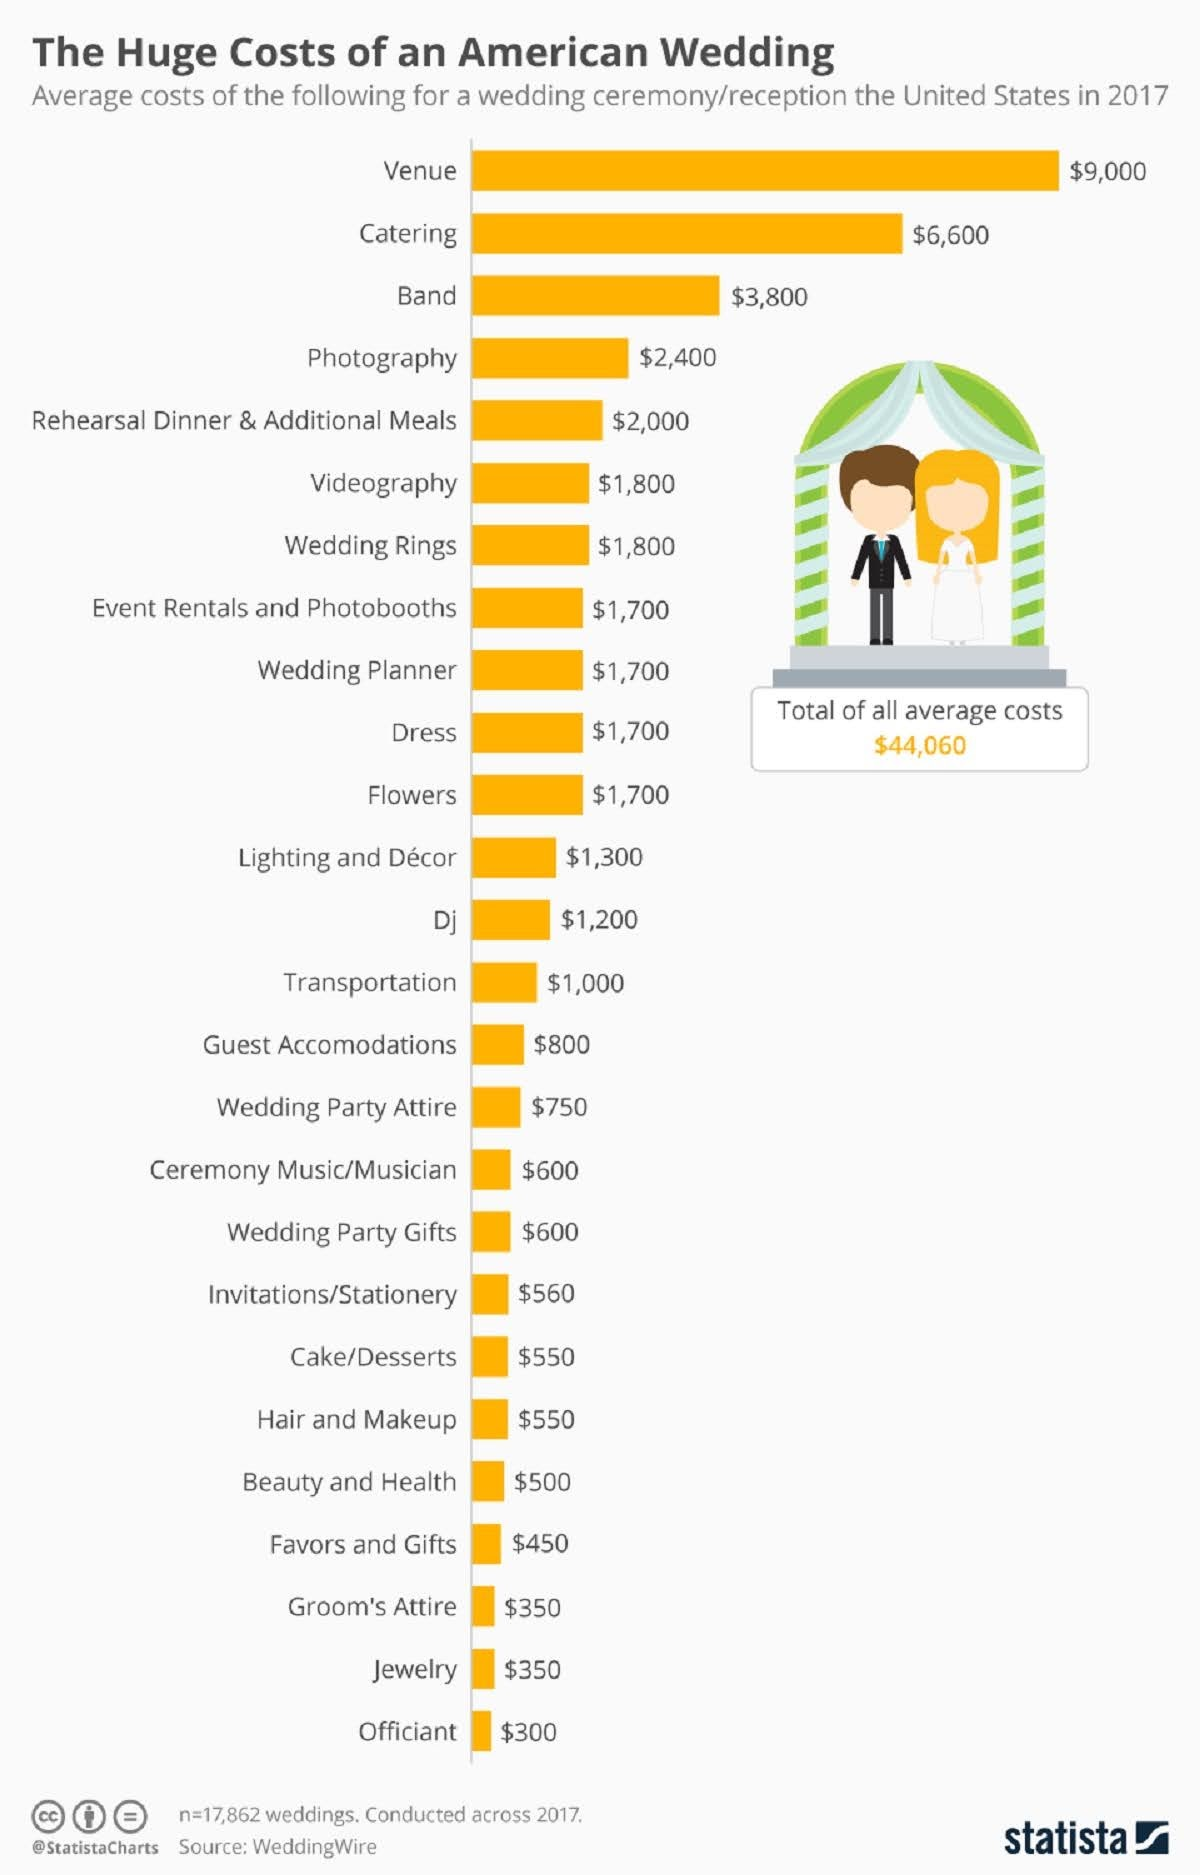 the-huge-costs-of-an-american-wedding-infographic